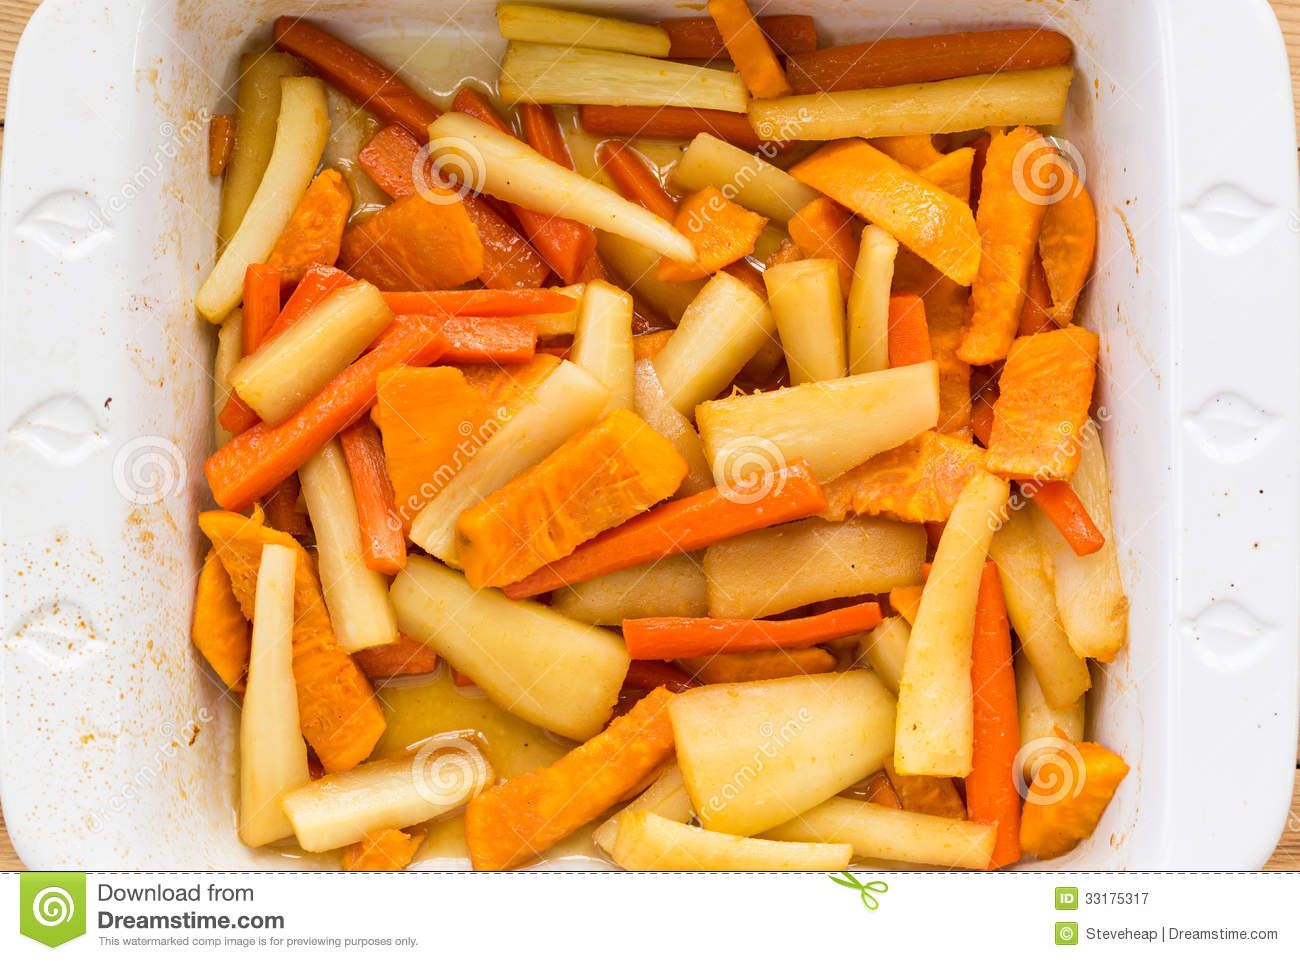 Carrots, Parsnips And Sweet Potatoes In Cider Sauce Royalty Free Stock ...